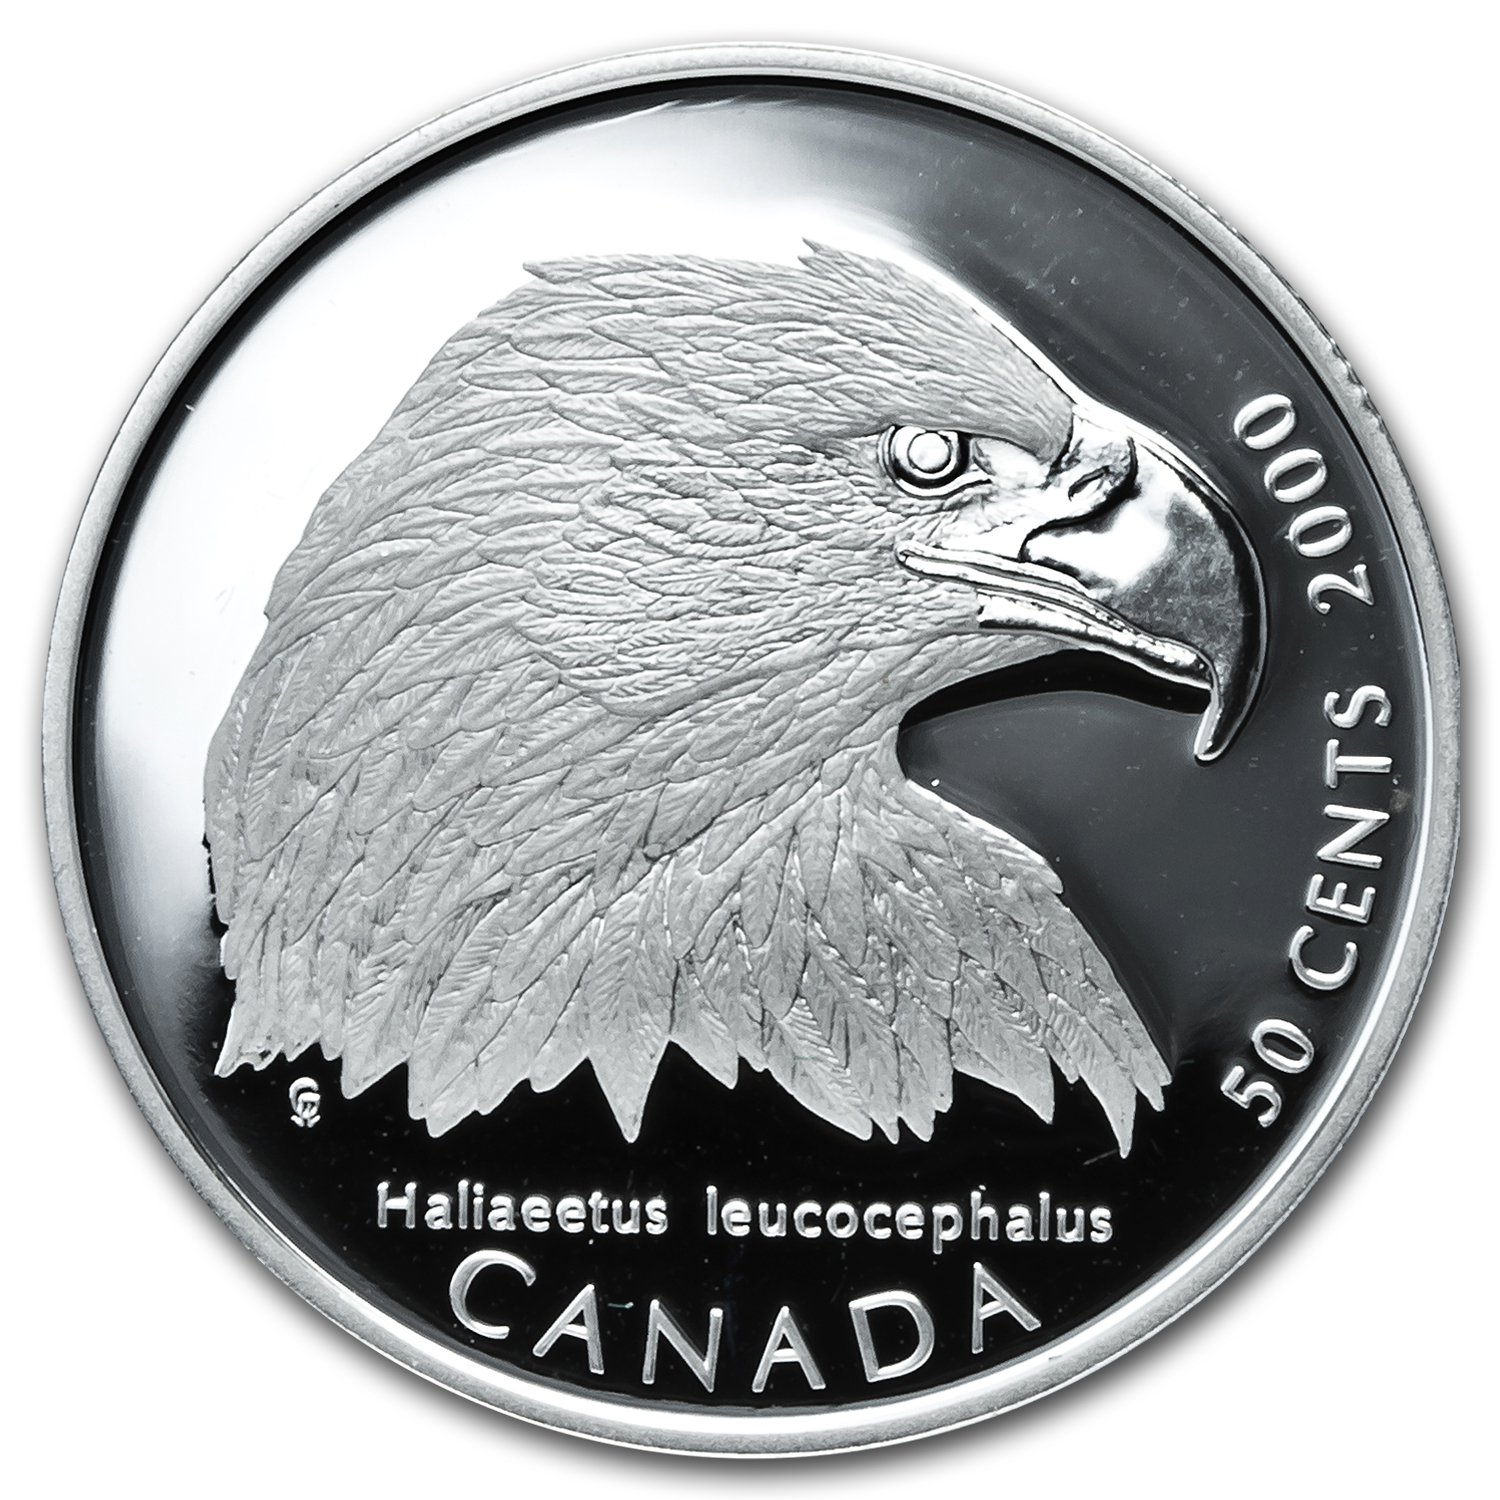 2000 Canada's Birds of Prey 4 Coin Silver Half Dollar Proof Set